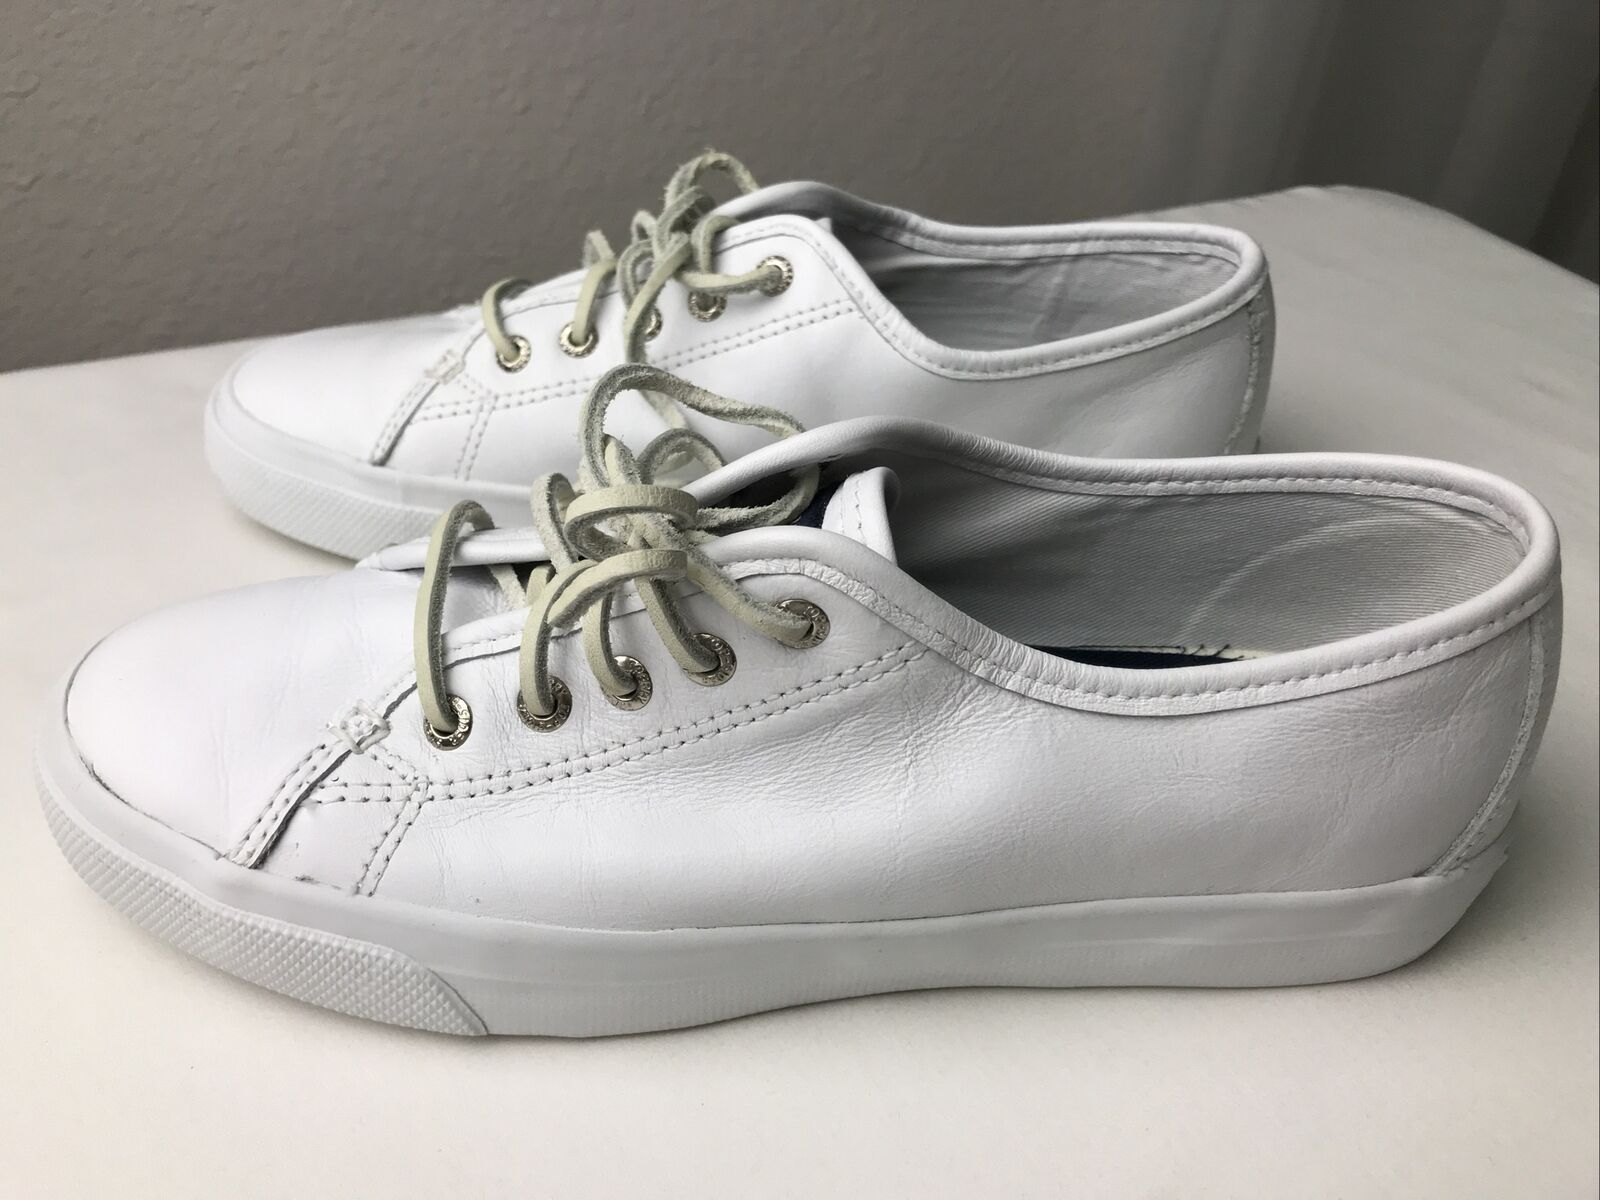 Sperry STS91888 Top-Sider Women's 7.5M Seacoast Boat Shoes Genuine Leather